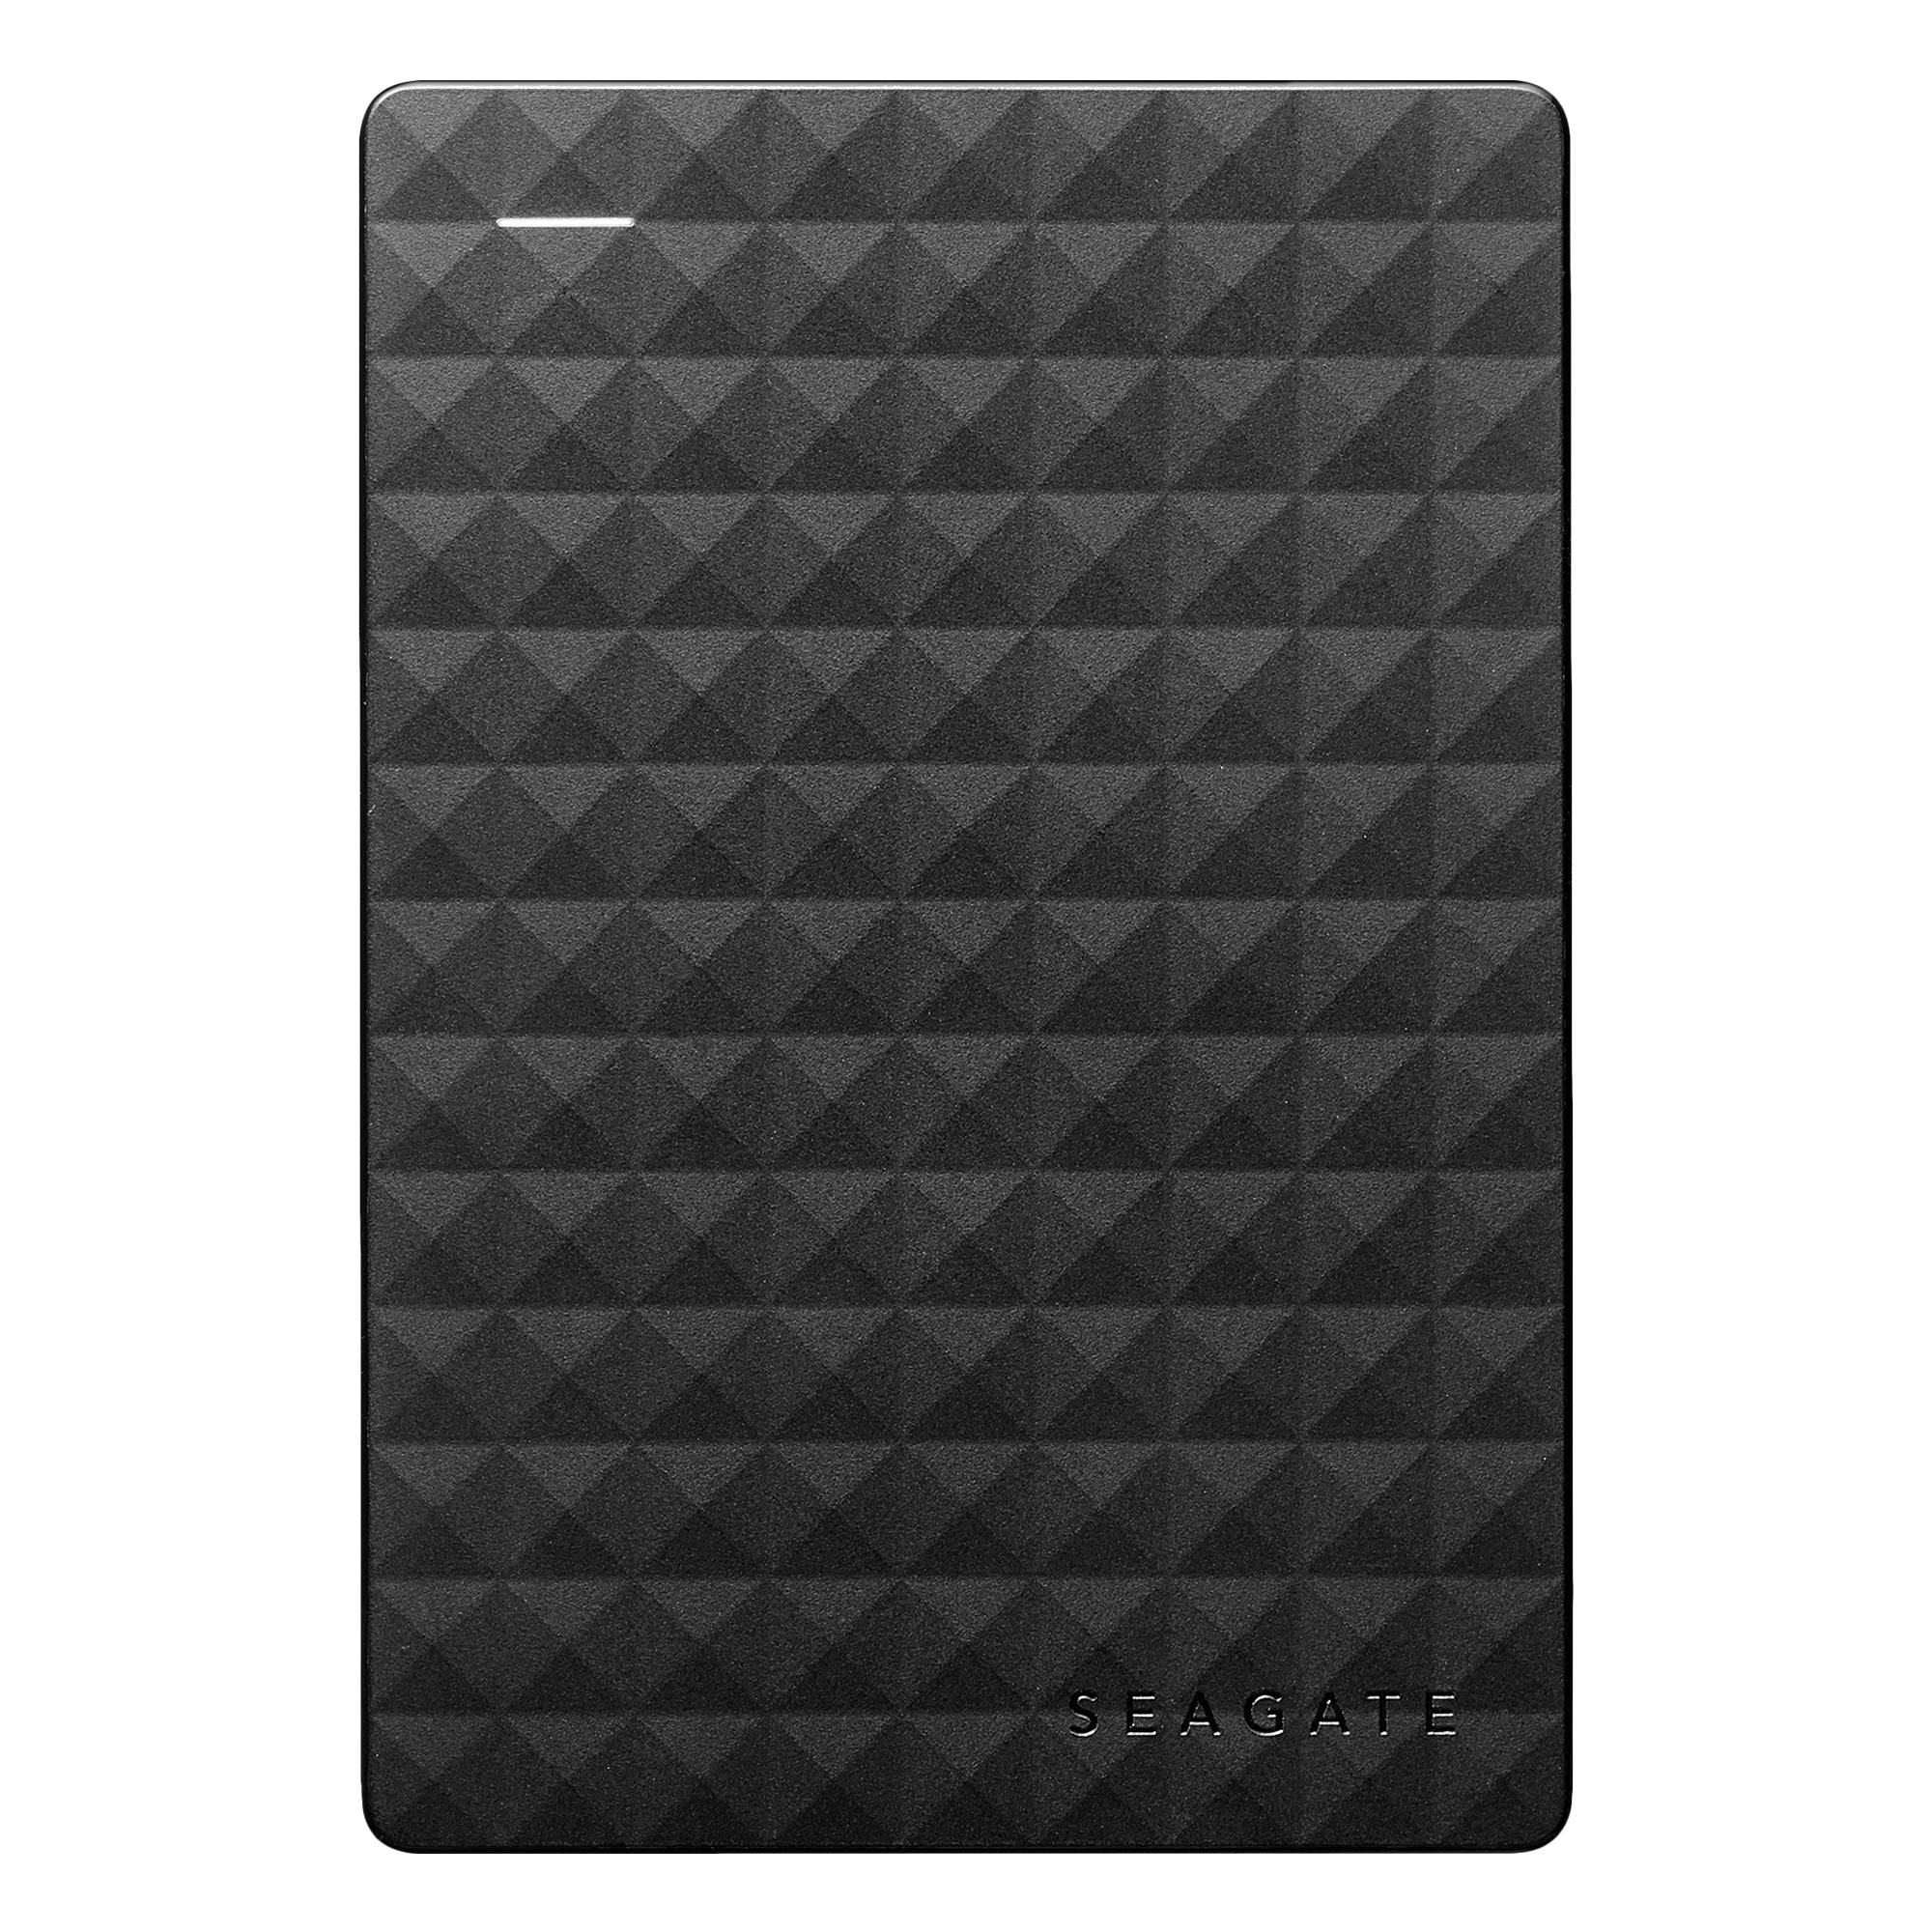 Seagate Expansion Portable 1.5TB External Hard Drive HDD – USB 3.0 for PC Laptop (STEA1500400) product image